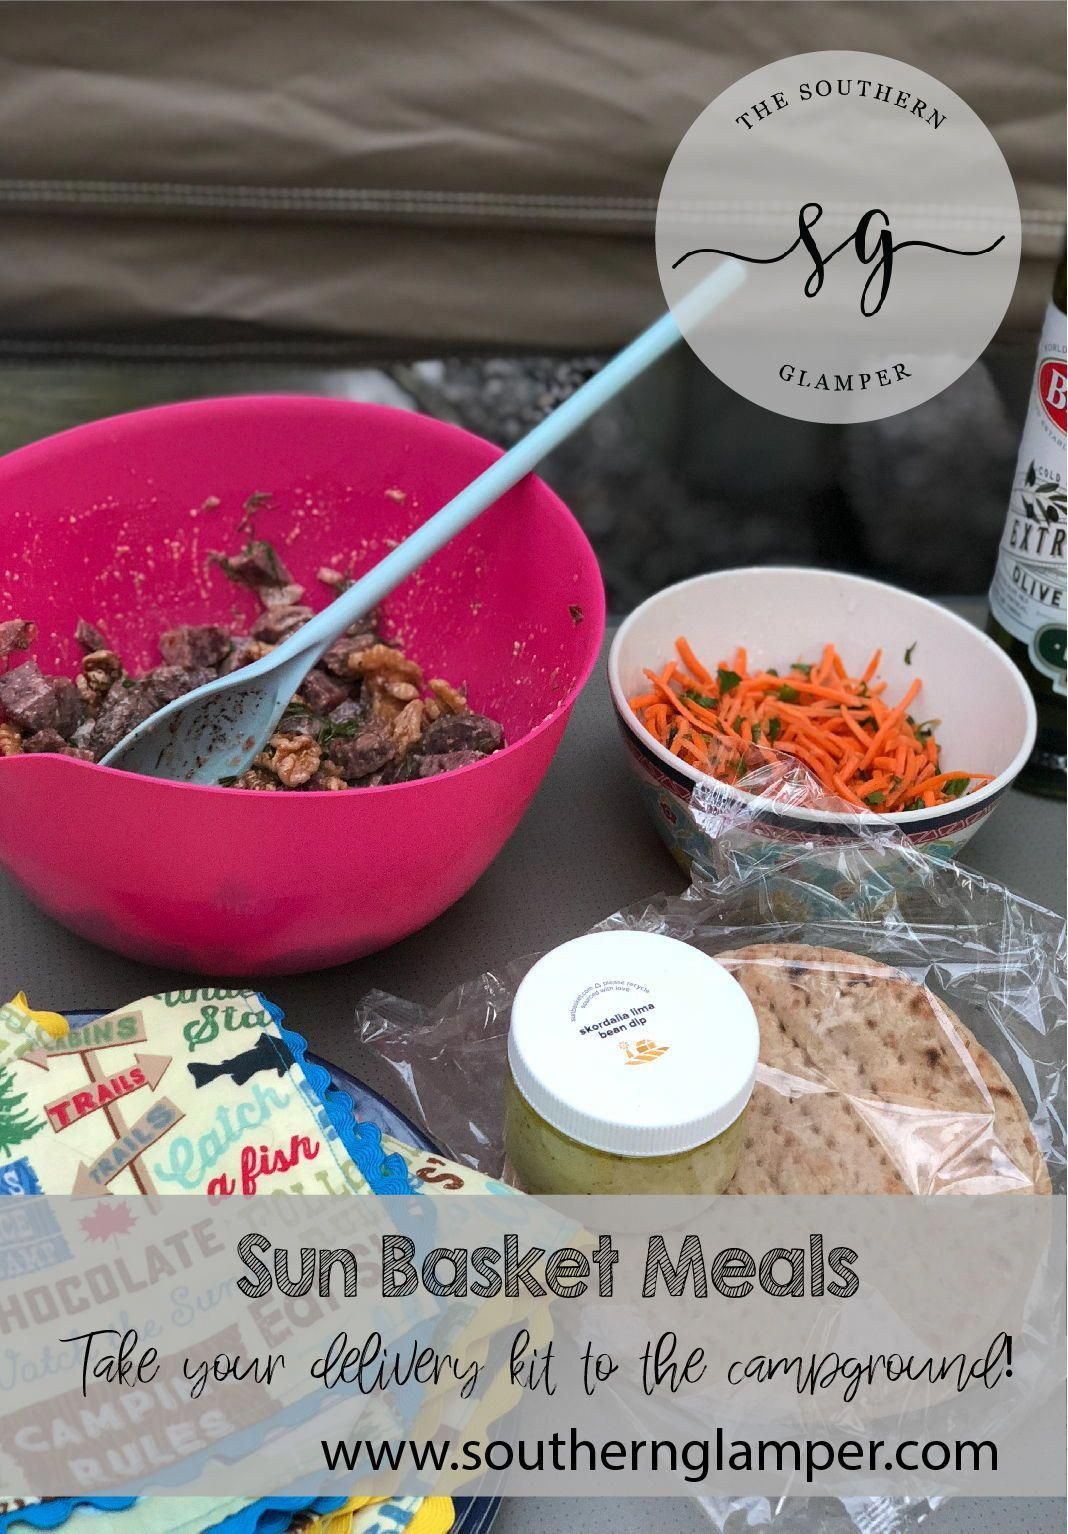 Take your Sun Basket Meal delivery kit with you to the campground for your best meals yet.  My full review and save $35 on your first box!  #sunbasket #mealdeliverykit #camping #glamping #popupcamper #healthyeating #campfirecooking #sunbasketrecipes